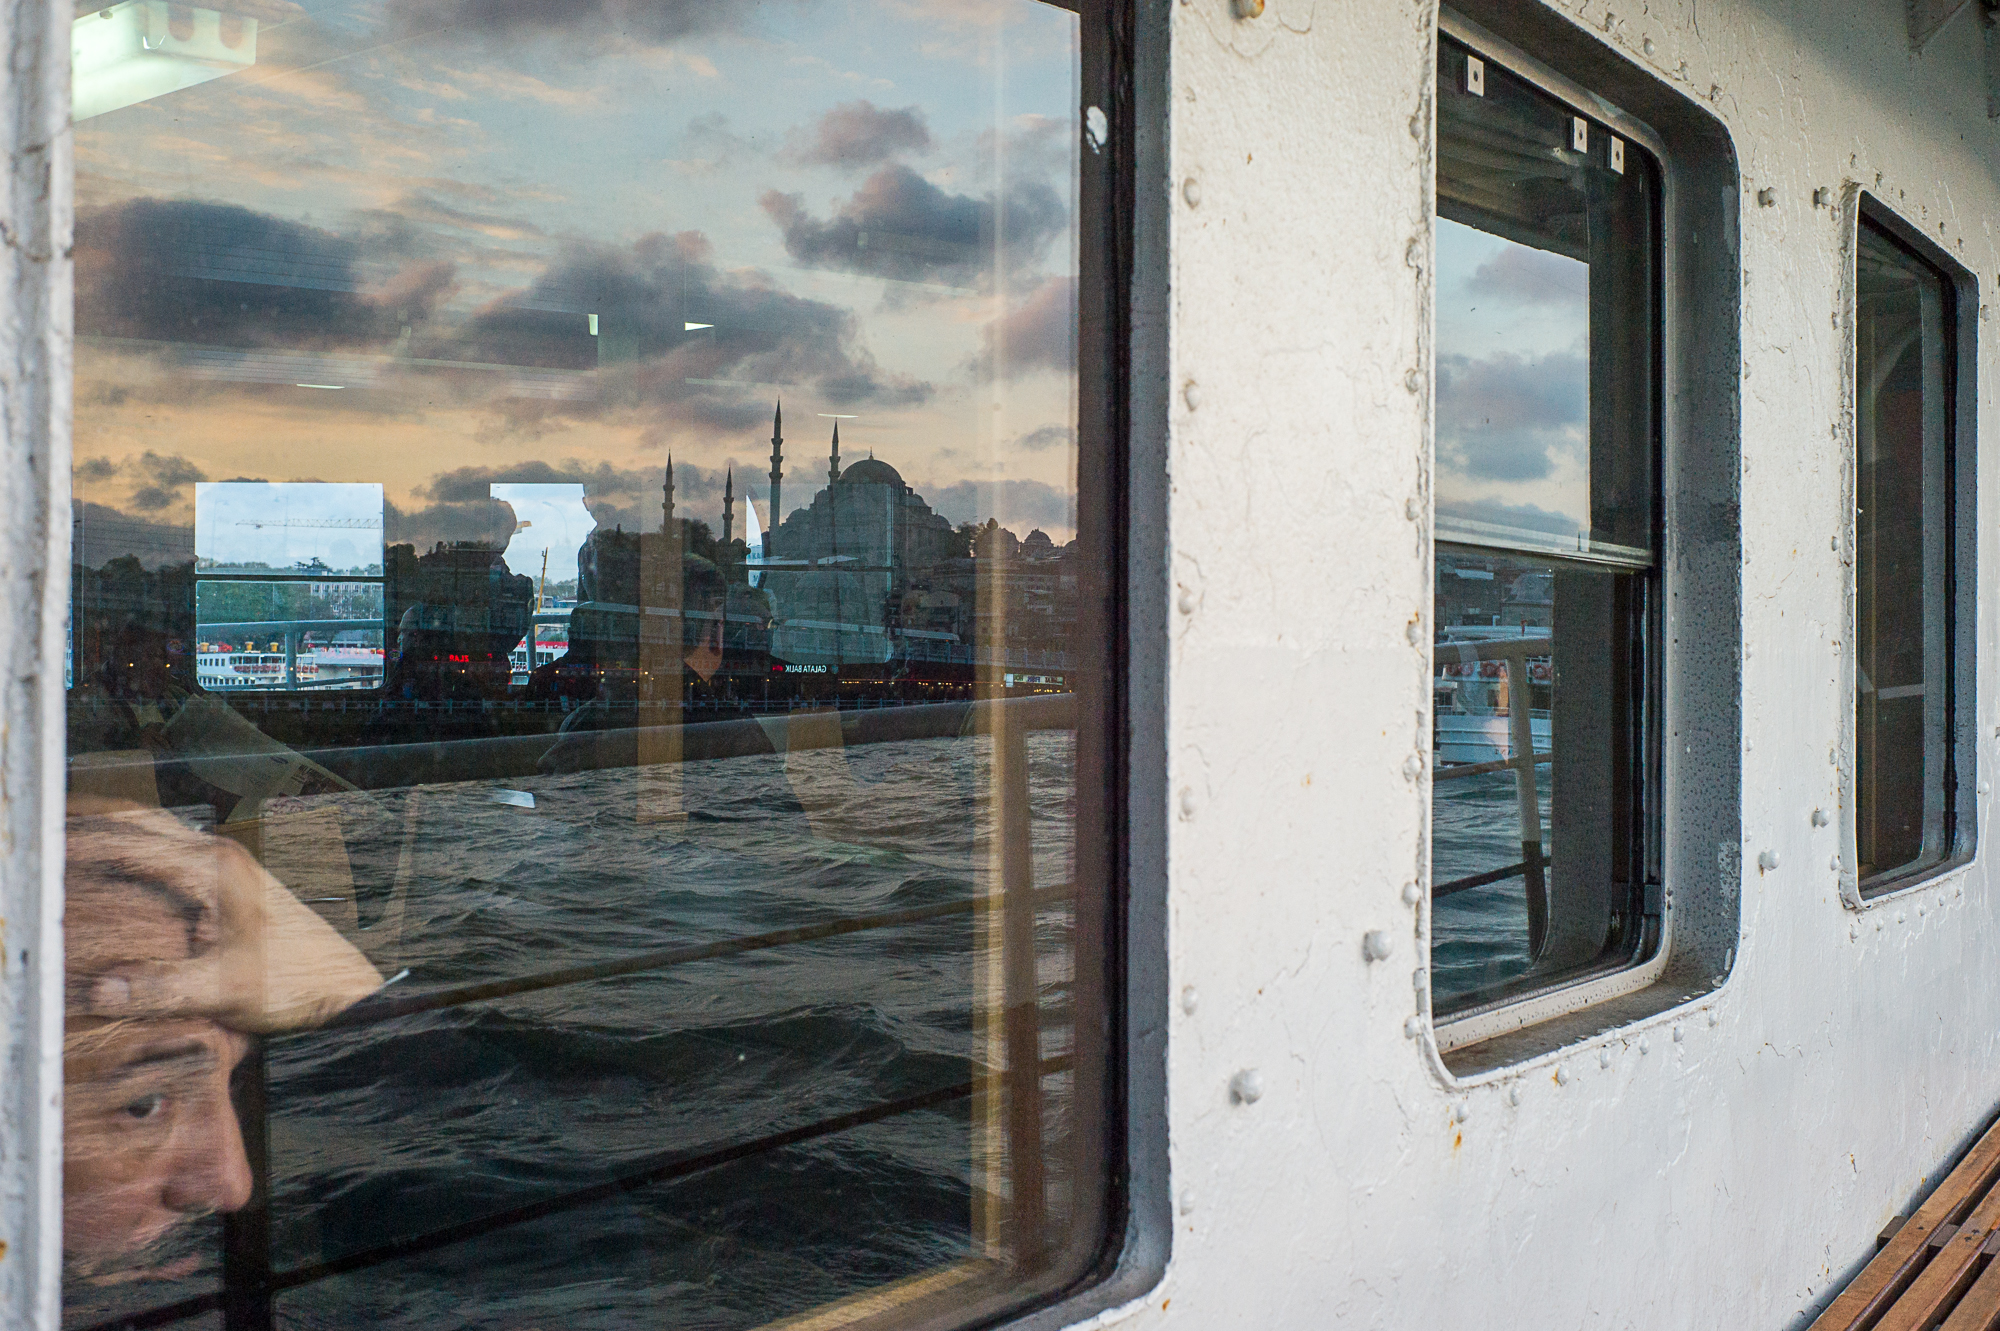 Reflection : A man is looking out of the window on a ferryboat, Istanbul